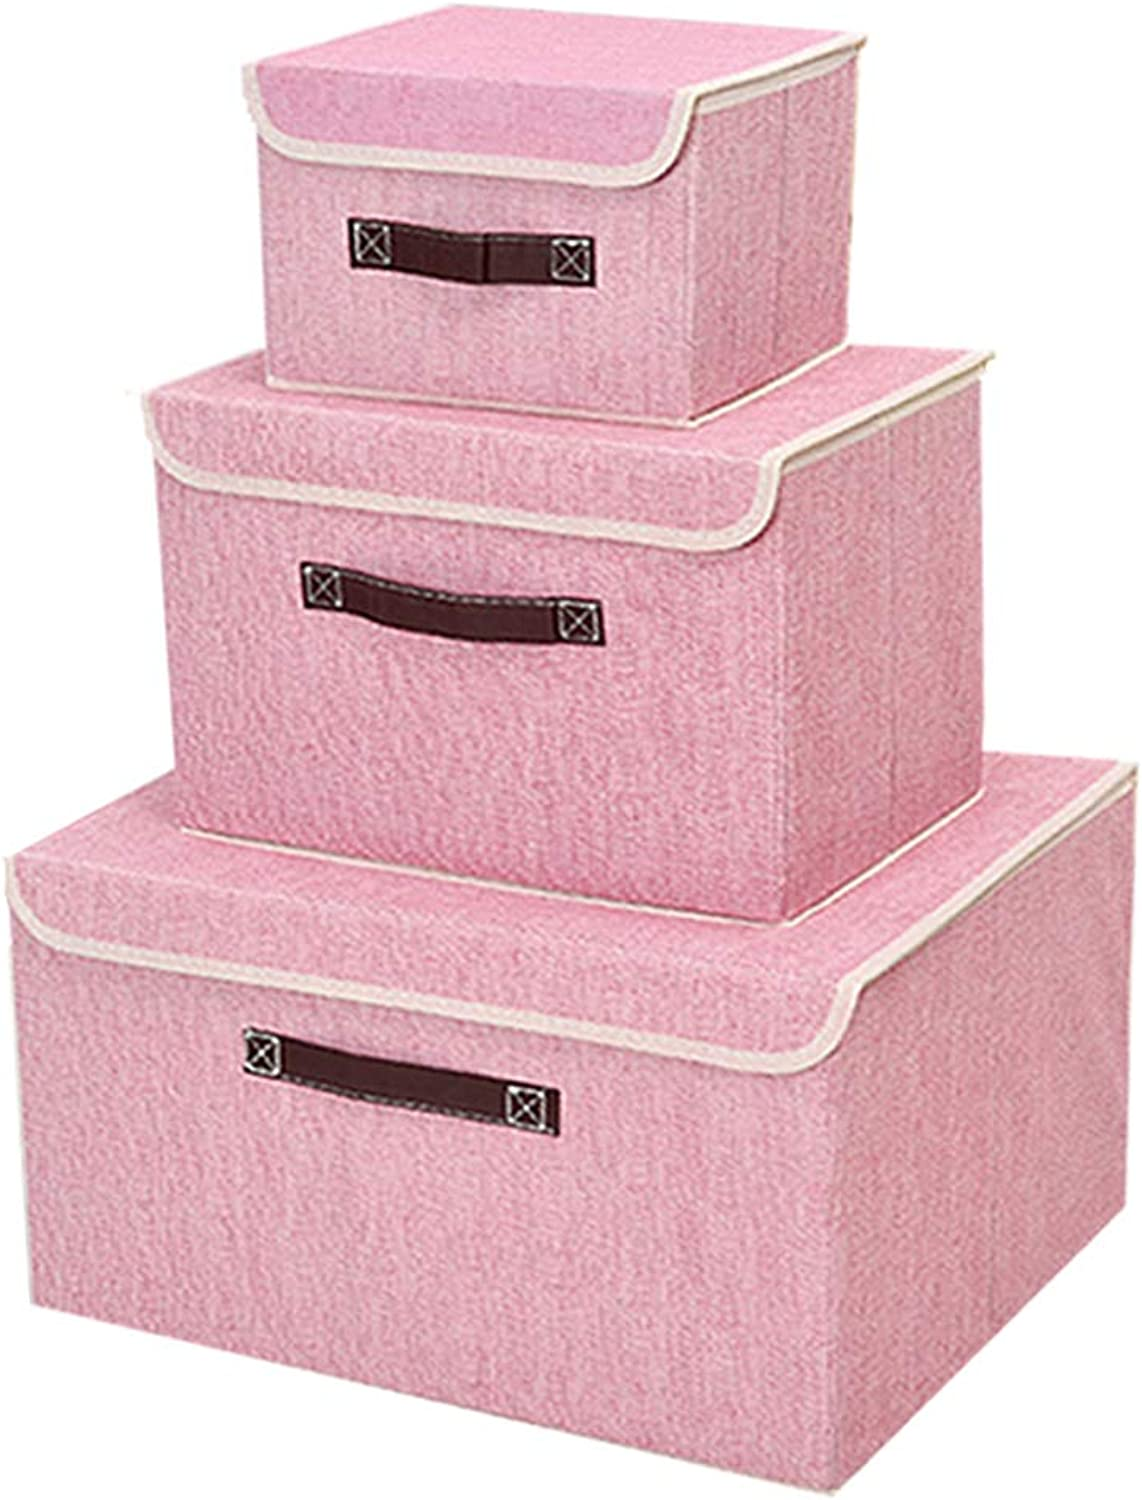 Pemalin Storage Bins Foldable Fabric Box- 3 Pack Shelf Linen Storage Cubes with Lid and Handle for Home Bedroom Closet Nursery Office(Pink)